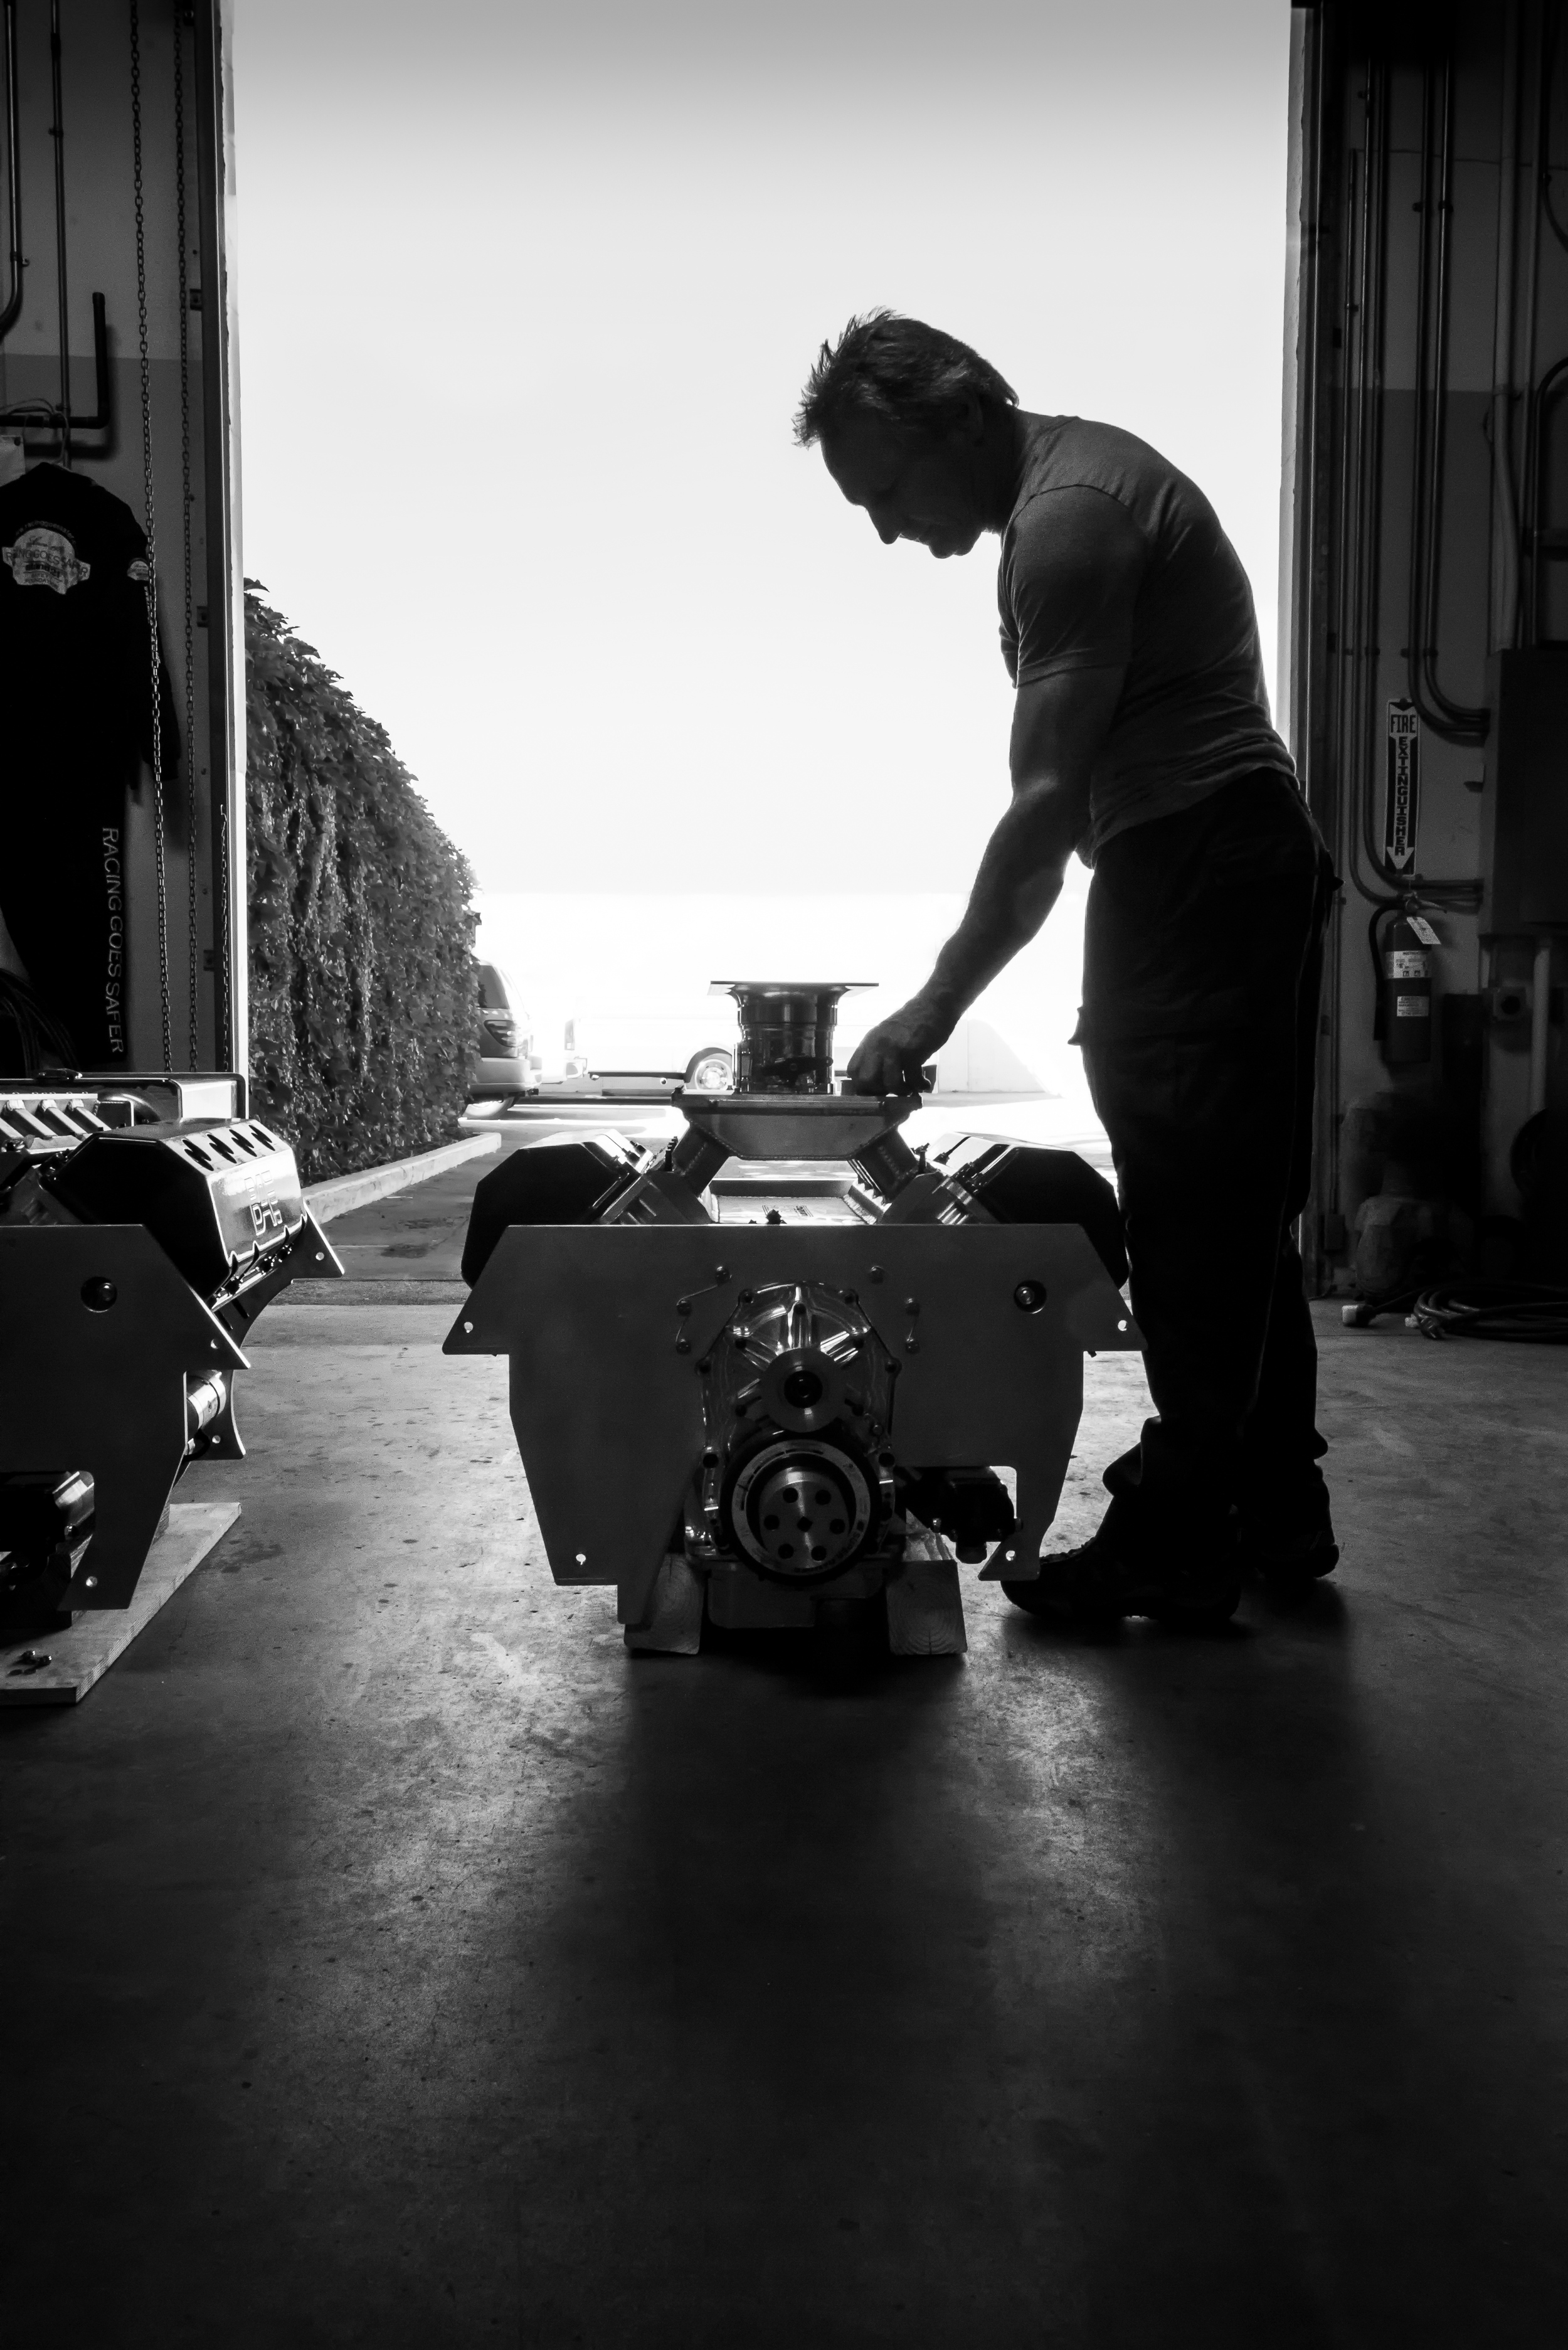 thompson challenger ii - thompson lsr - danny thompson and nick arias iii- october 2013 images by holly martin-24.jpg